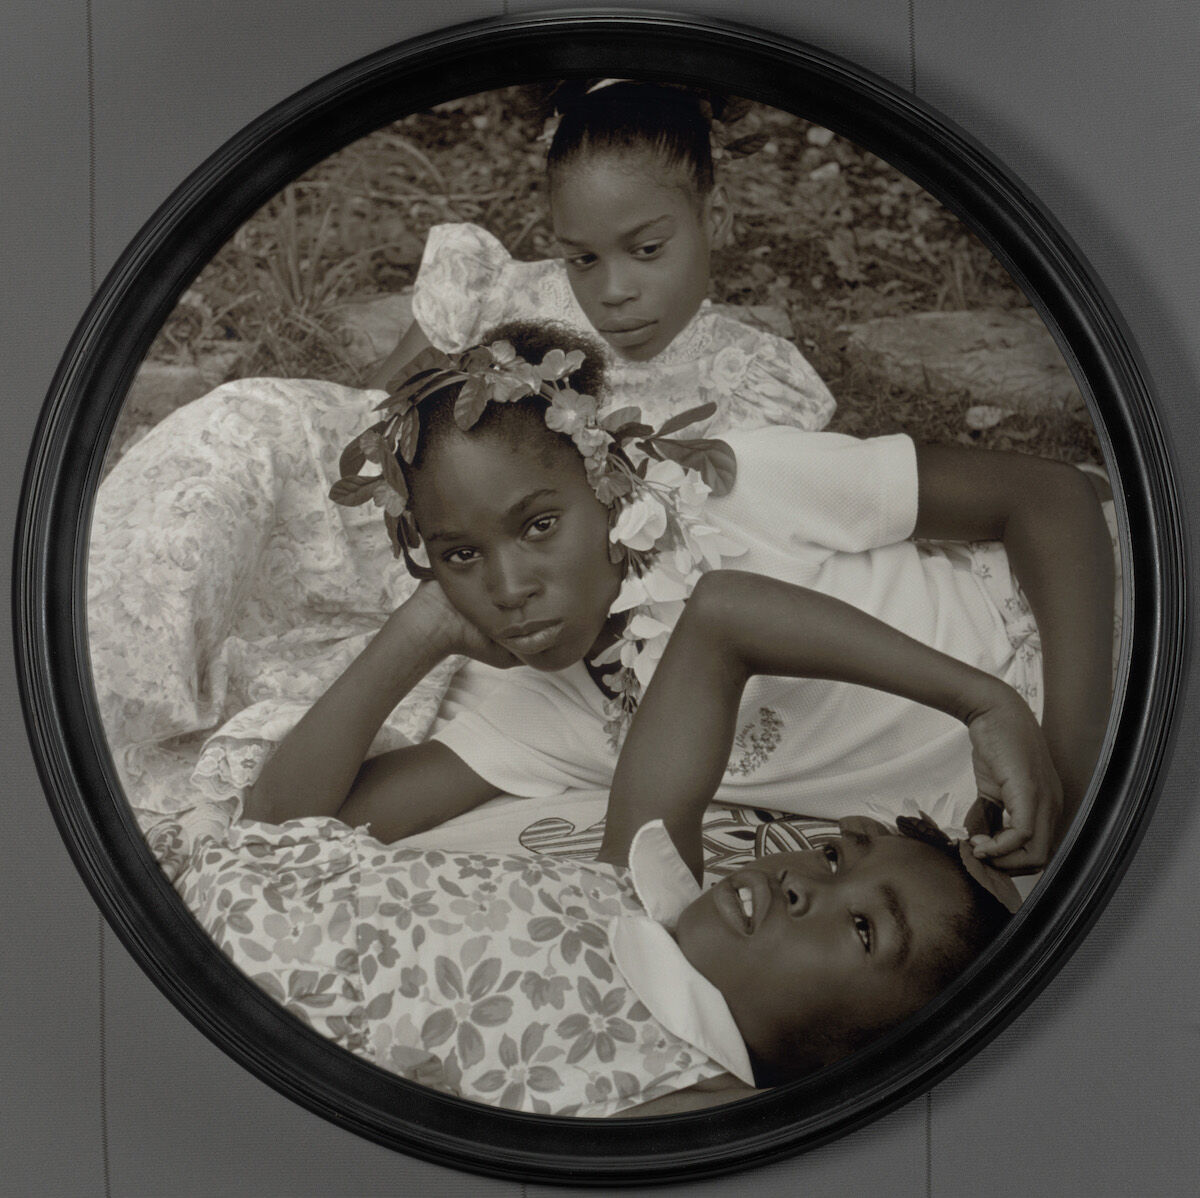 Carrie Mae Weems, May Flowers, 2002. The Baltimore Museum of Art: Purchase with exchange funds from the Pearlstone Family Fund and partial gift of The Andy Warhol Foundation for the Visual Arts, Inc. © Carrie Mae Weems.